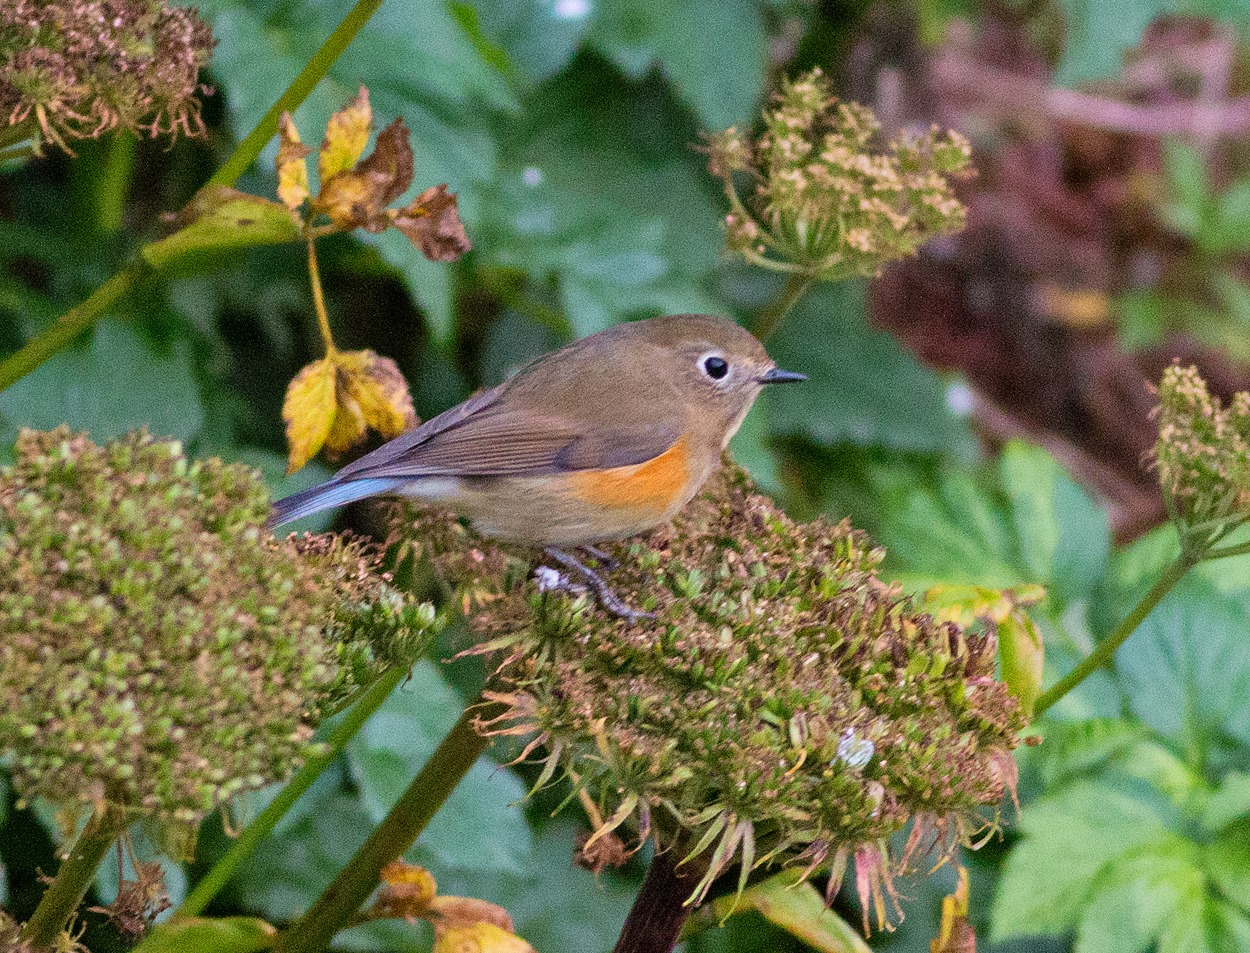 Red-flanked Bluetail, Tarsiger cyanurus